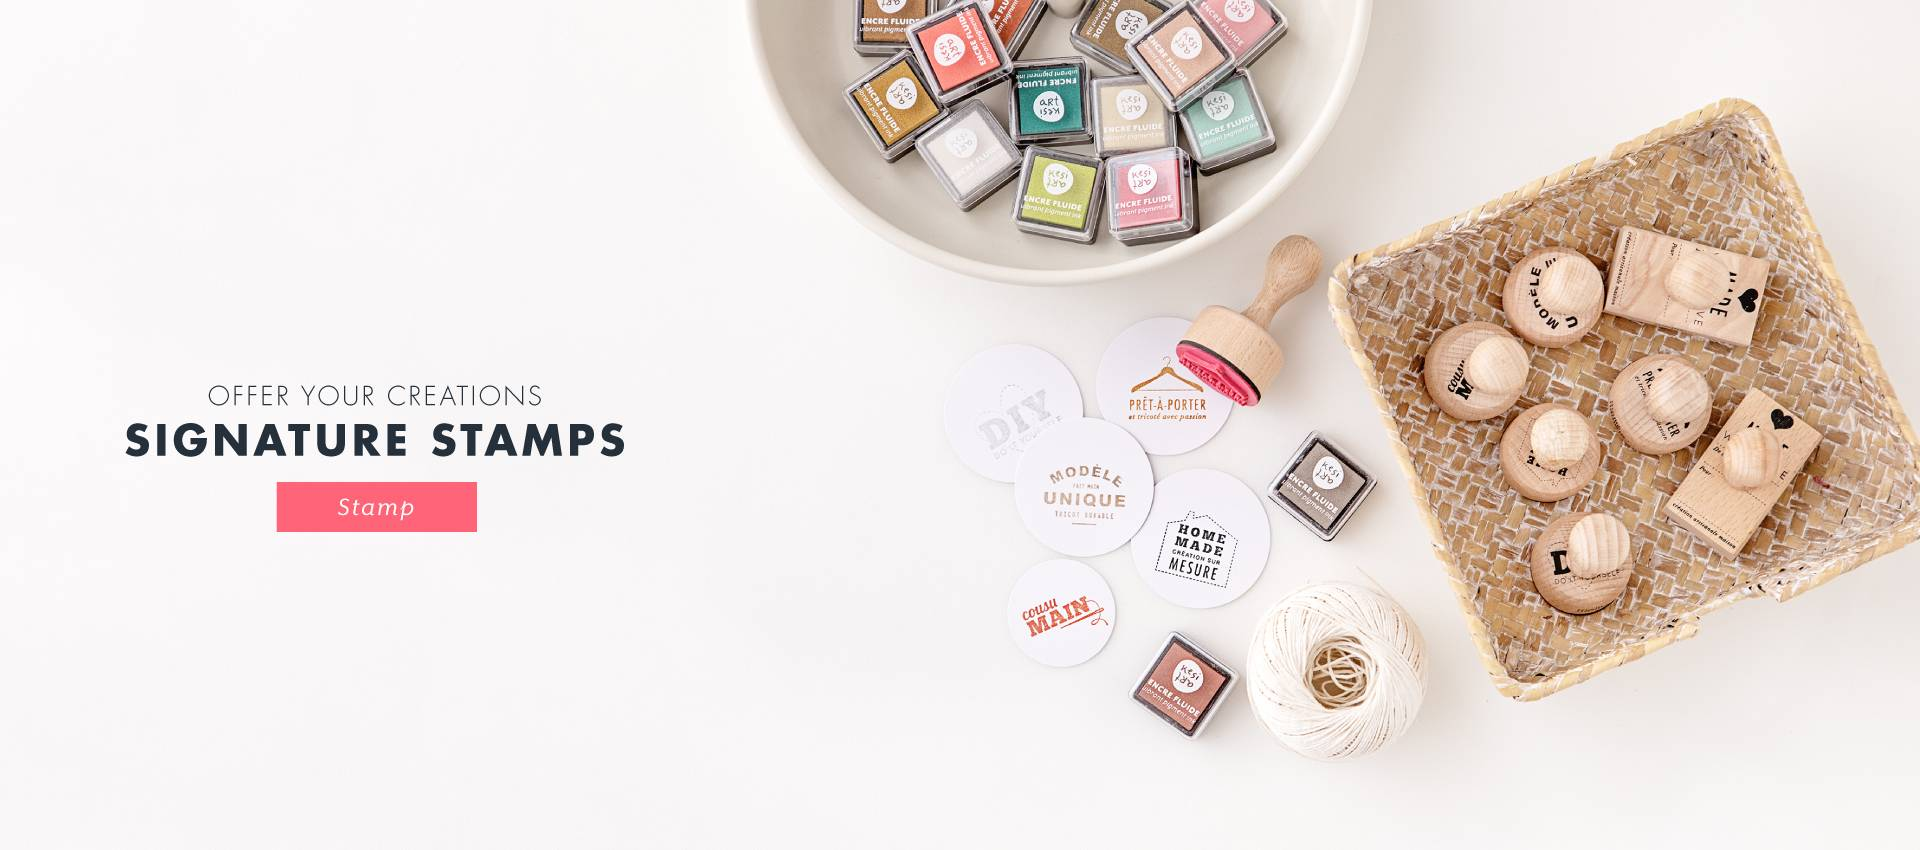 SIGNATURE STAMPS: offer your creations in style with our wooden handle stamps and our inks